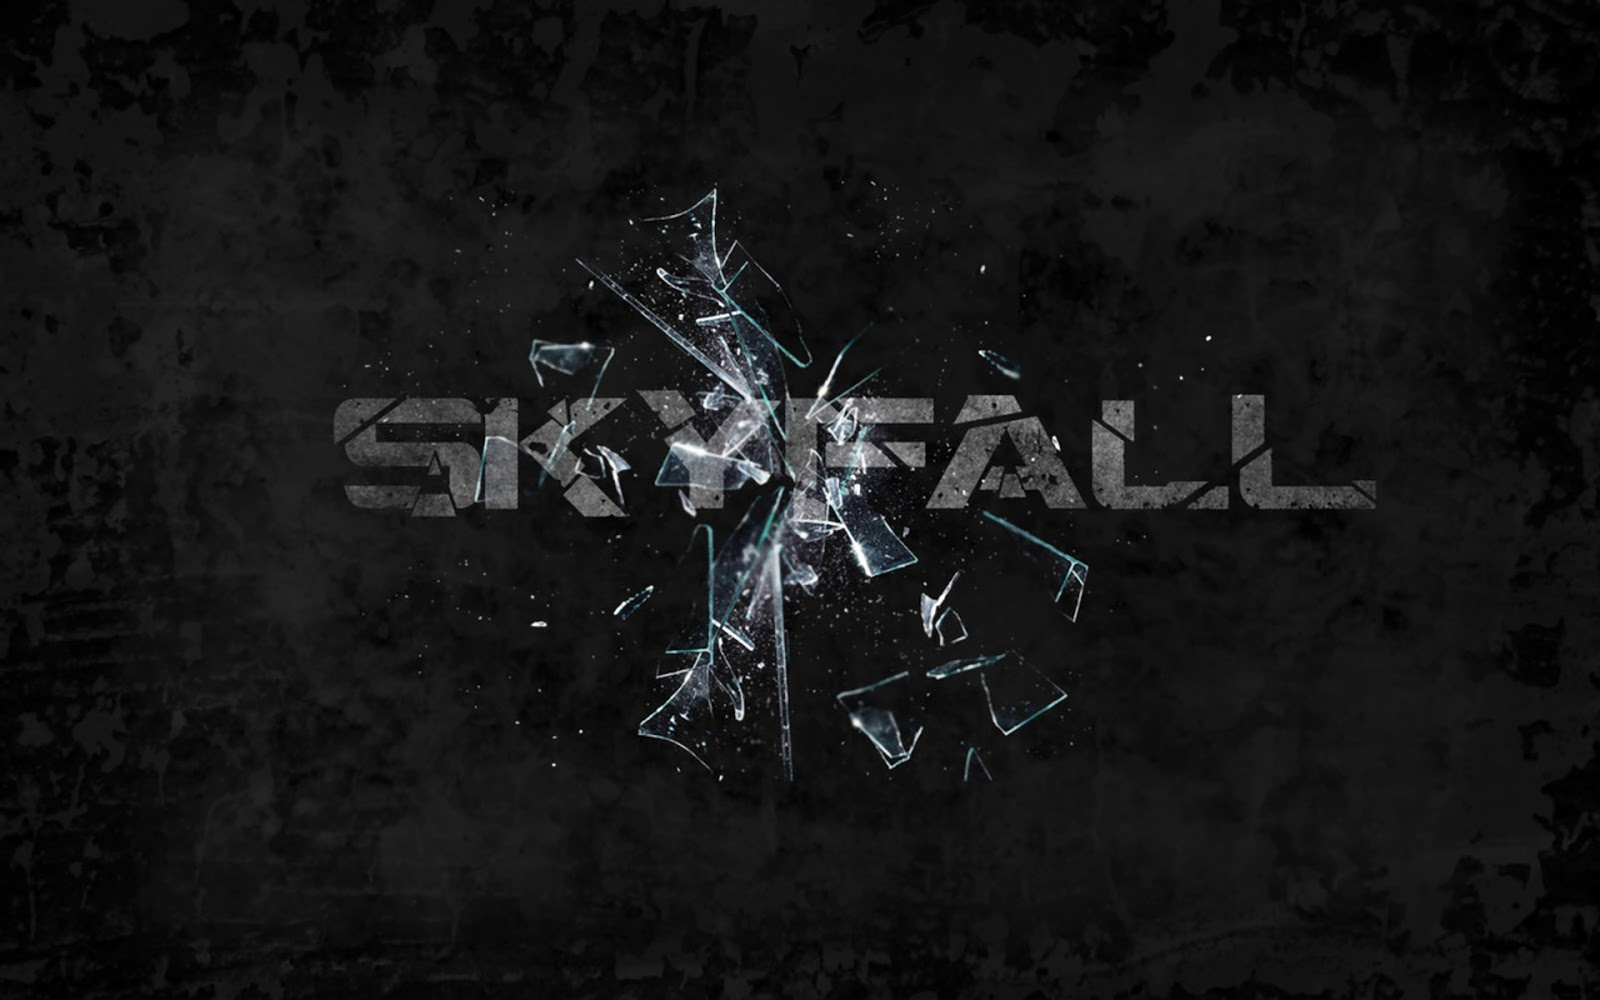 HD Wallpapers for iPhone 5 - James Bond 007 Skyfall Wallpapers | Free HD Wallpapers for Your ...